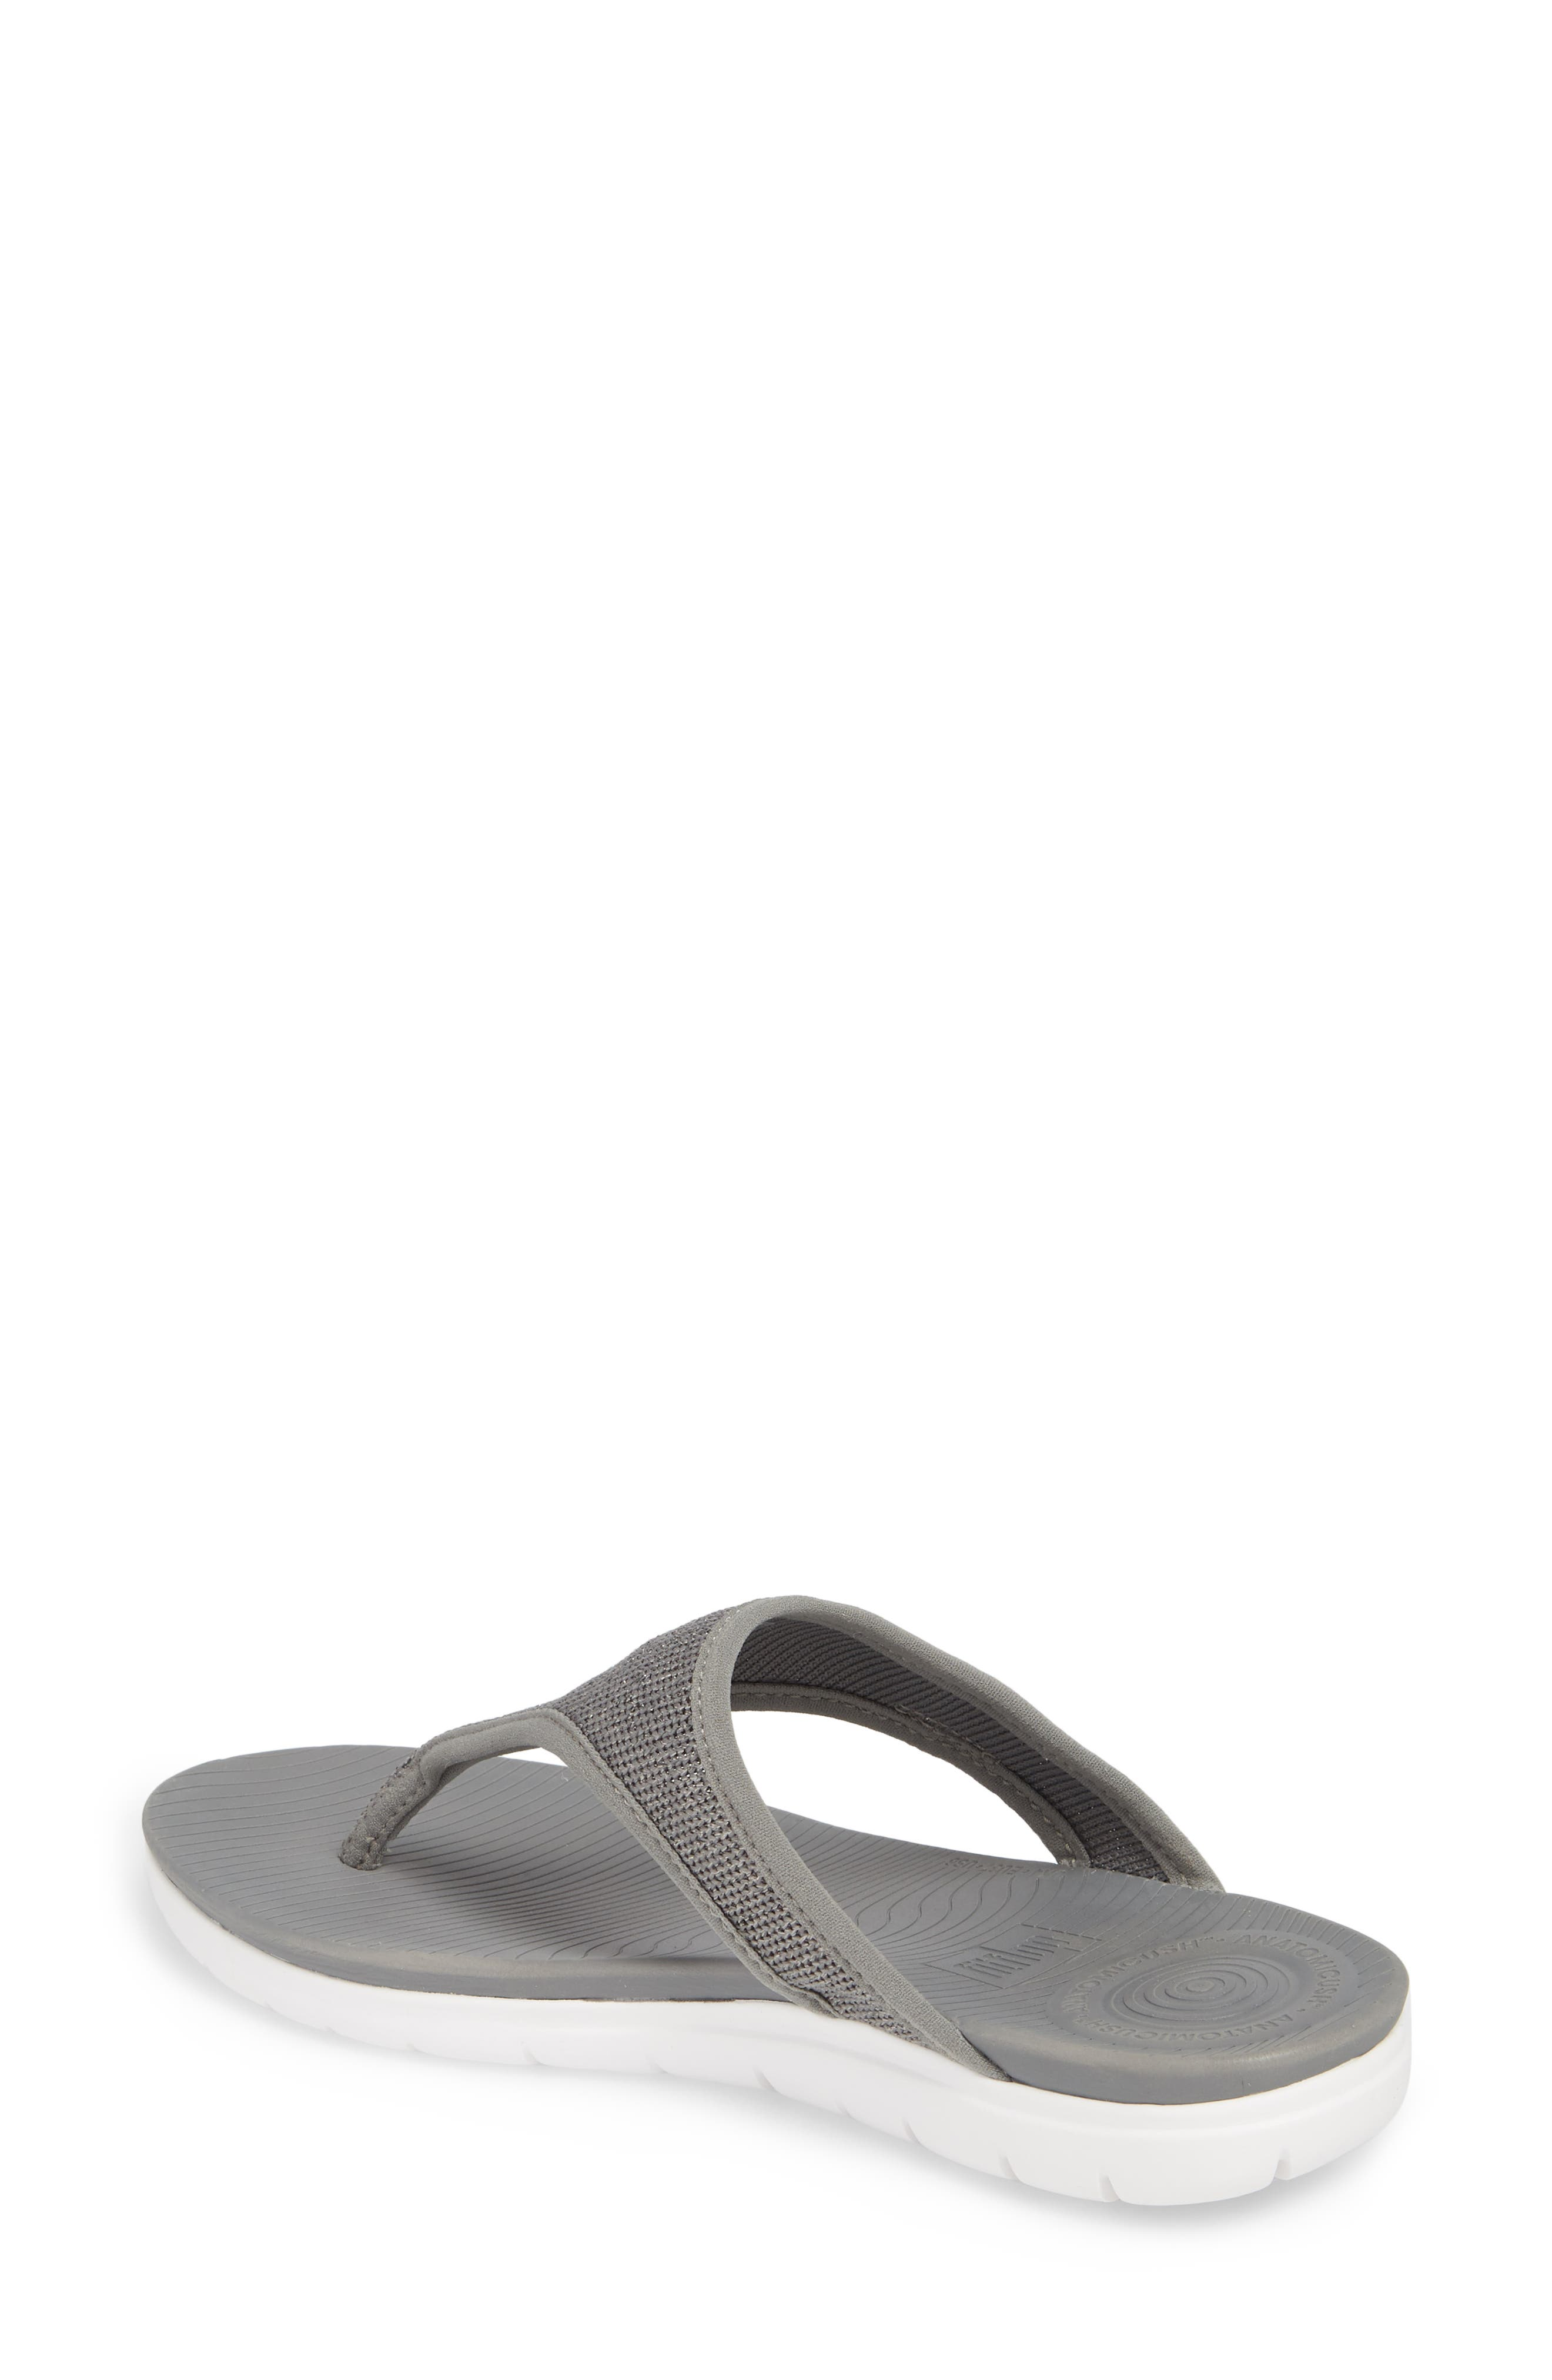 Überknit Flip Flop,                             Alternate thumbnail 2, color,                             Charcoal Grey/ Pewter Leather